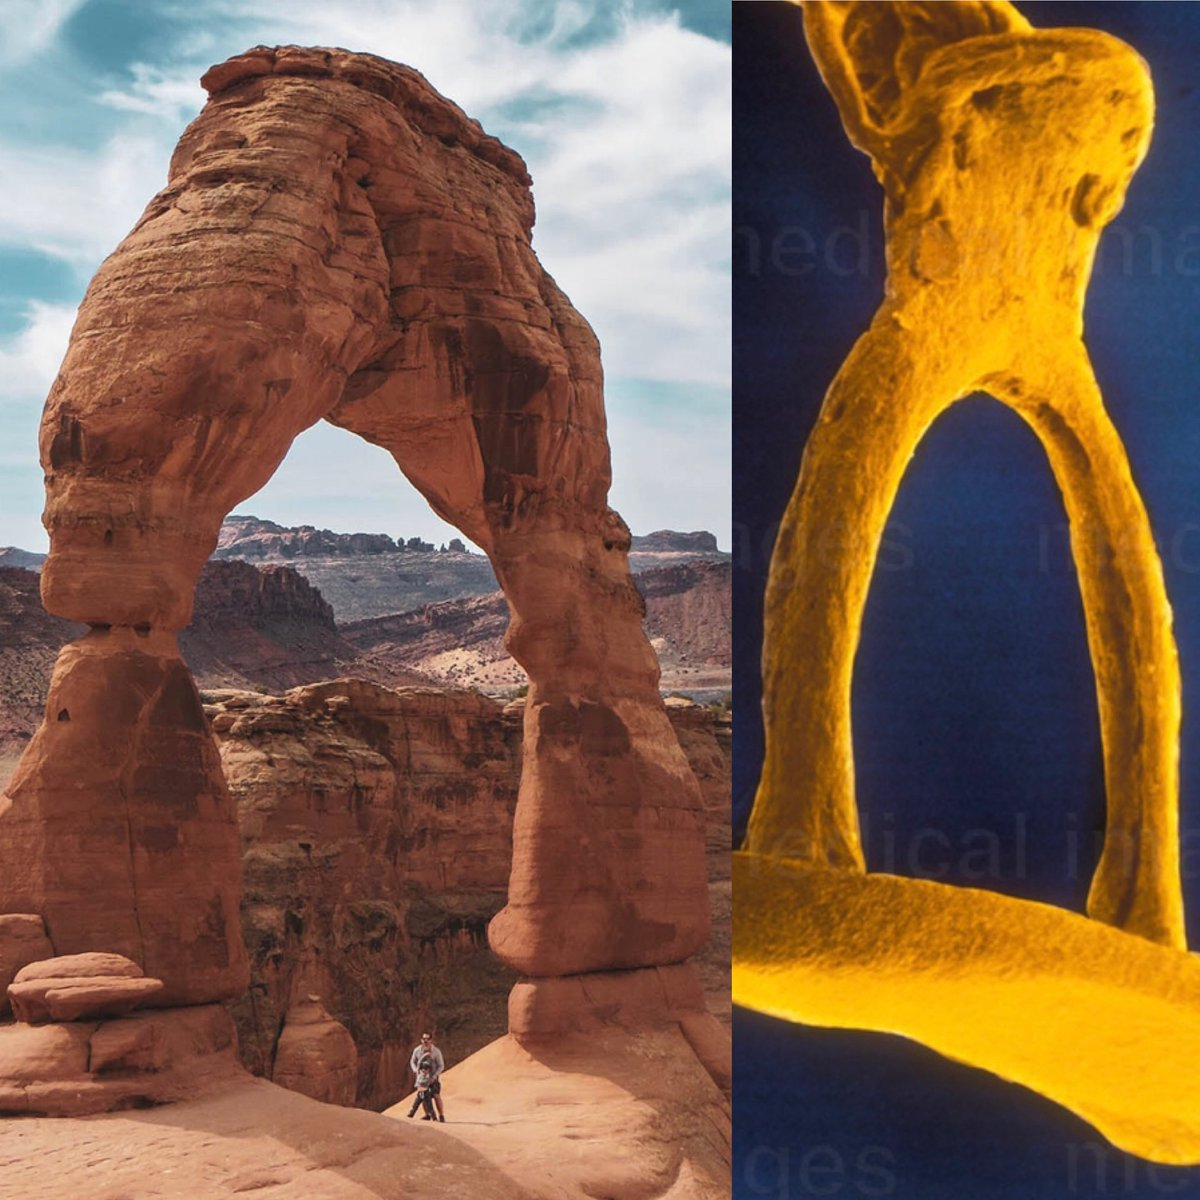 Demonstrated the auditory ossicles in medical gross anatomy lab this week and for the first time noticed the similarity between the stapes and Delicate Arch!  #anatomy #arches #moab #stapes #ossicles #ear #earth https://t.co/NAo7W6Uqoc